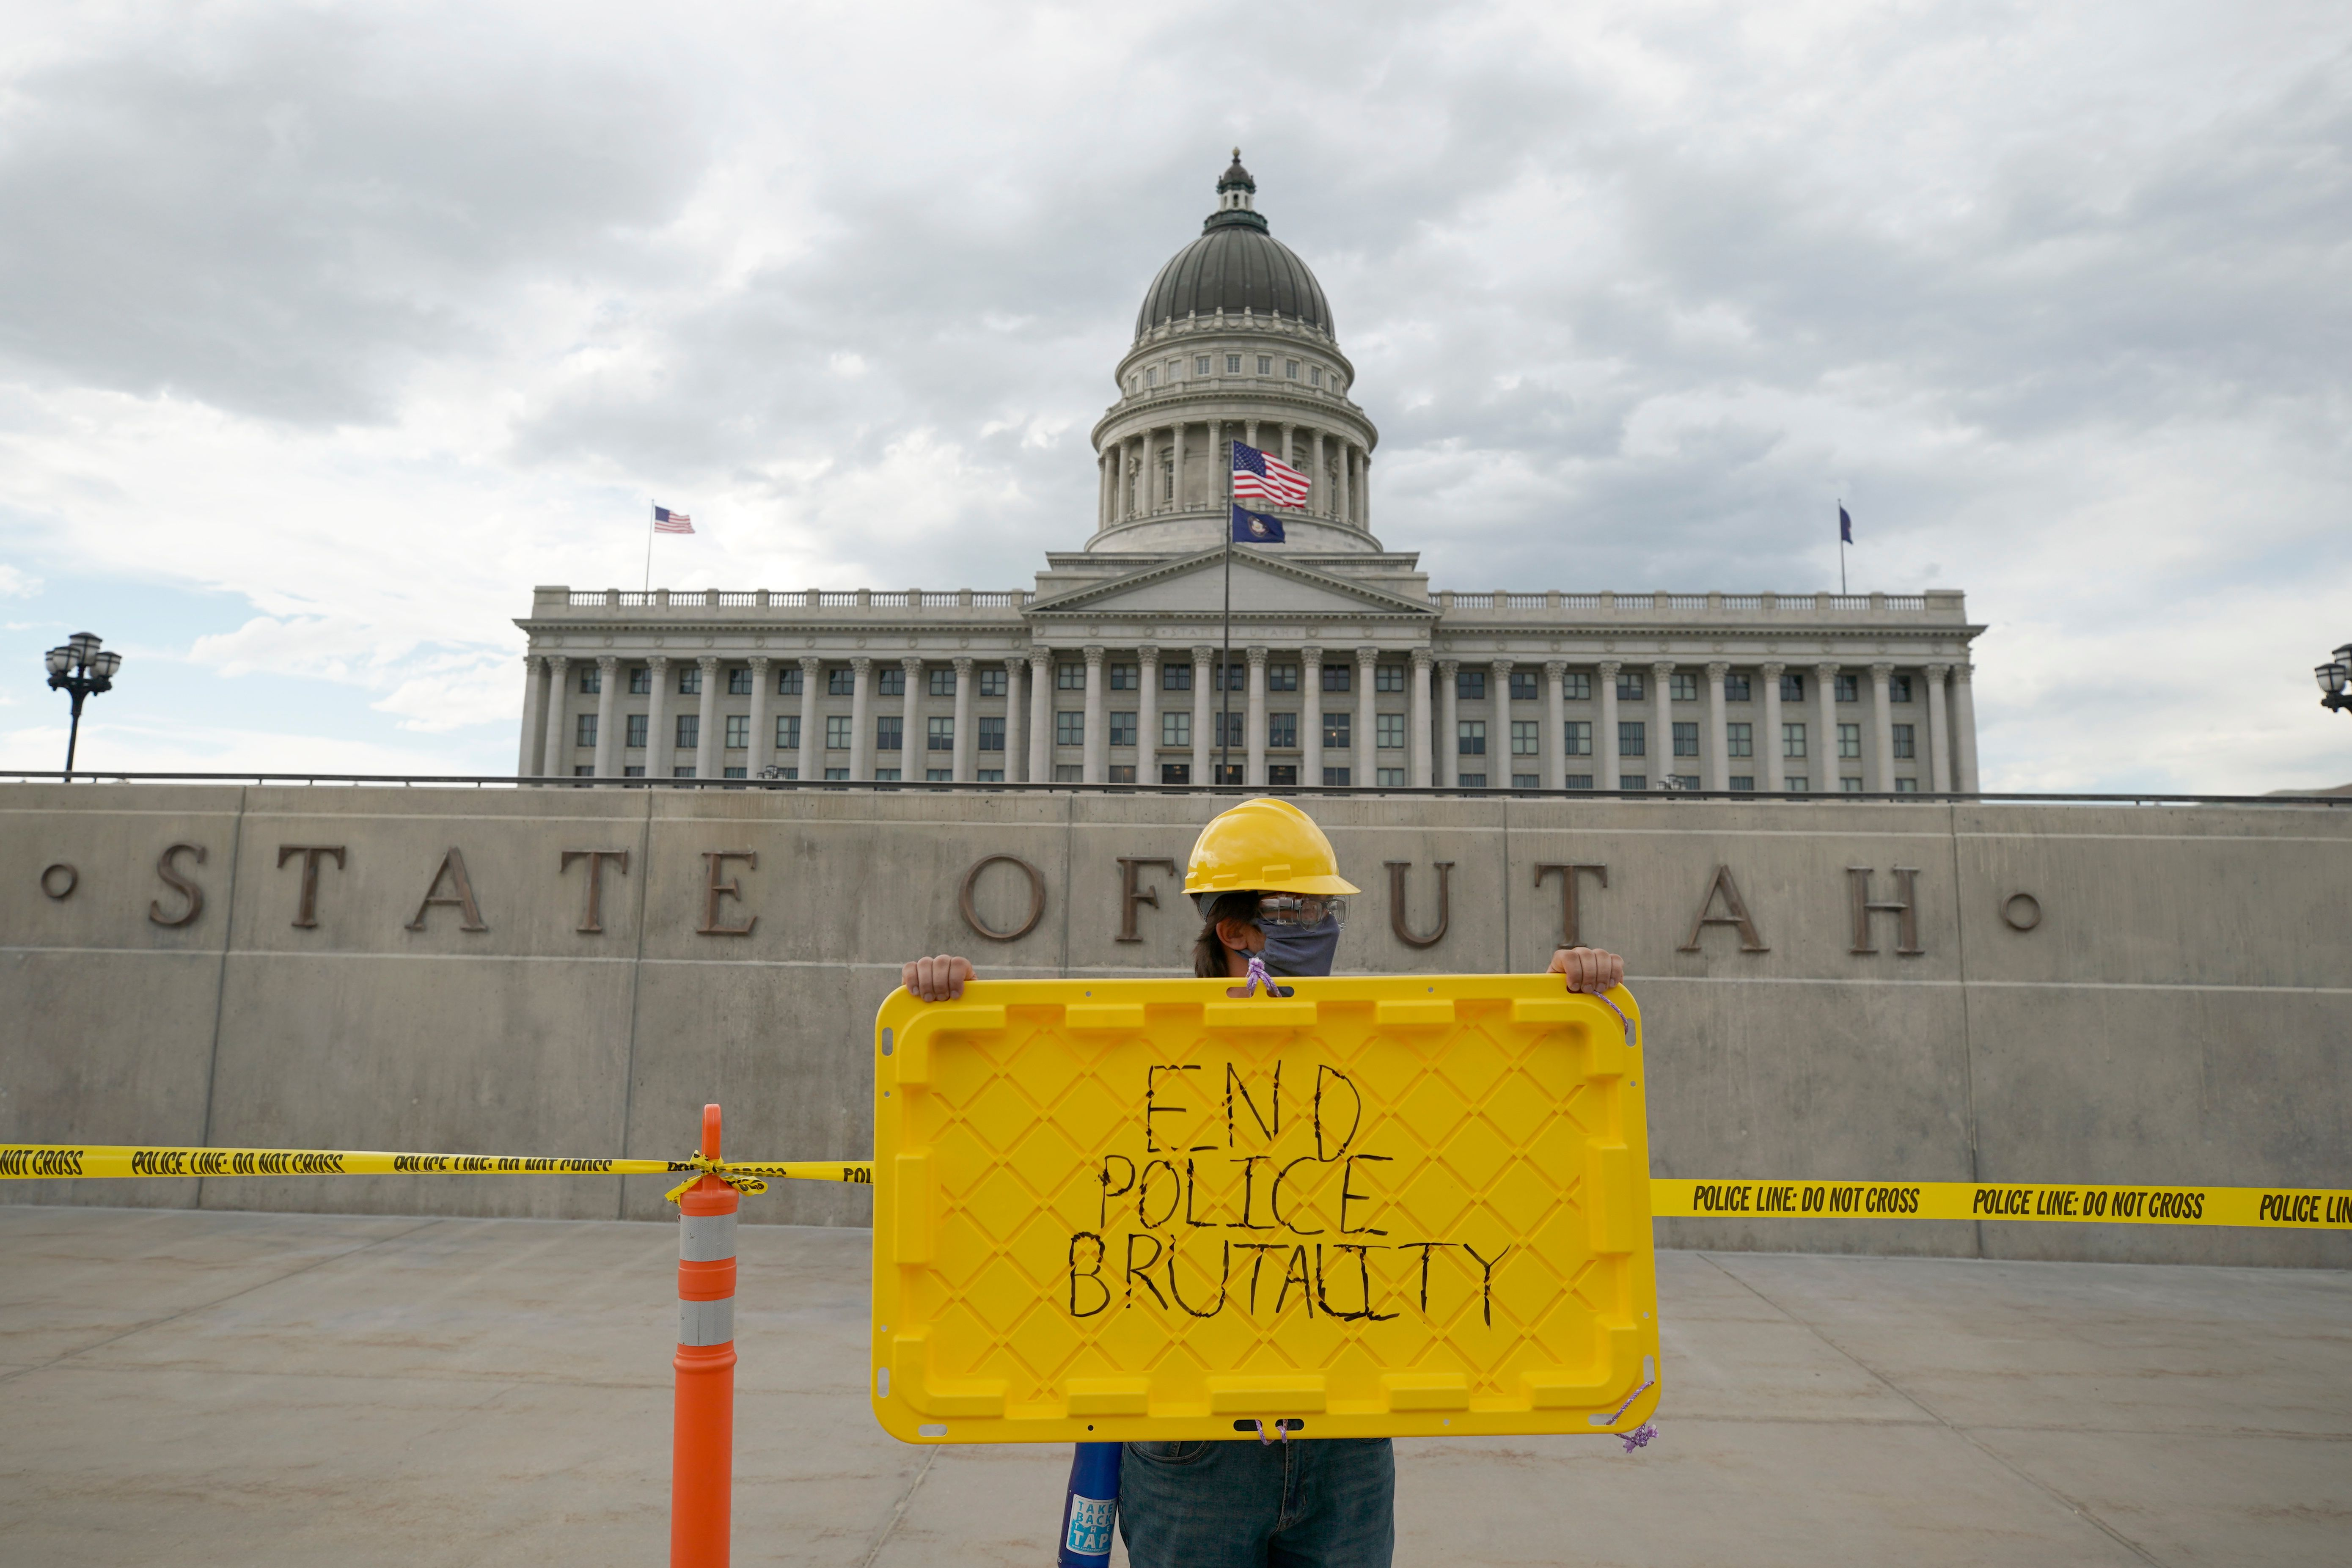 A protester holds a sign in front of the Utah State Capitol building during a protest in Salt Lake City, Utah on June 5, 2020. (Photo by GEORGE FREY/AFP via Getty Images)